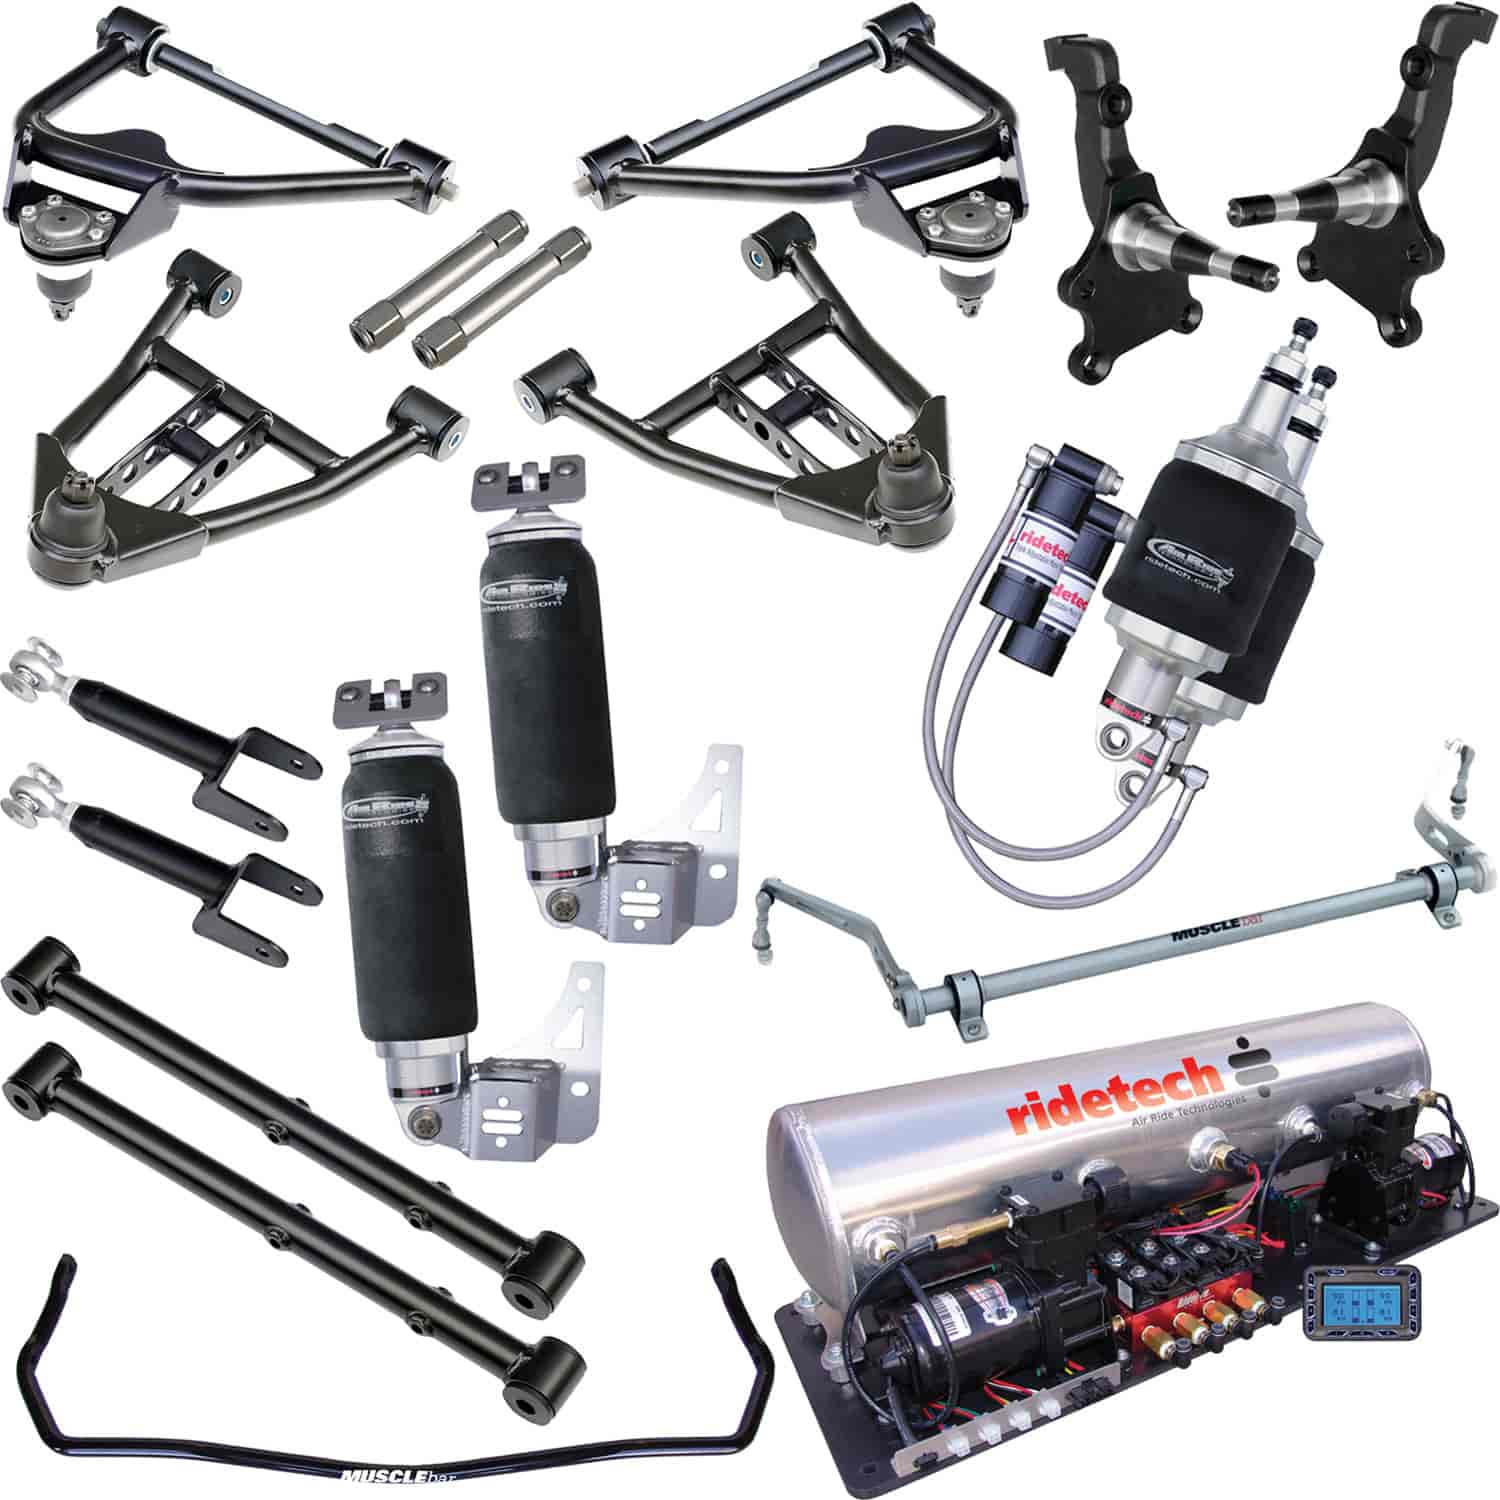 Ridetech 11240399 - Ridetech 1964-72 Chevelle/GTO/Cutlass/Skylark Air Suspension System